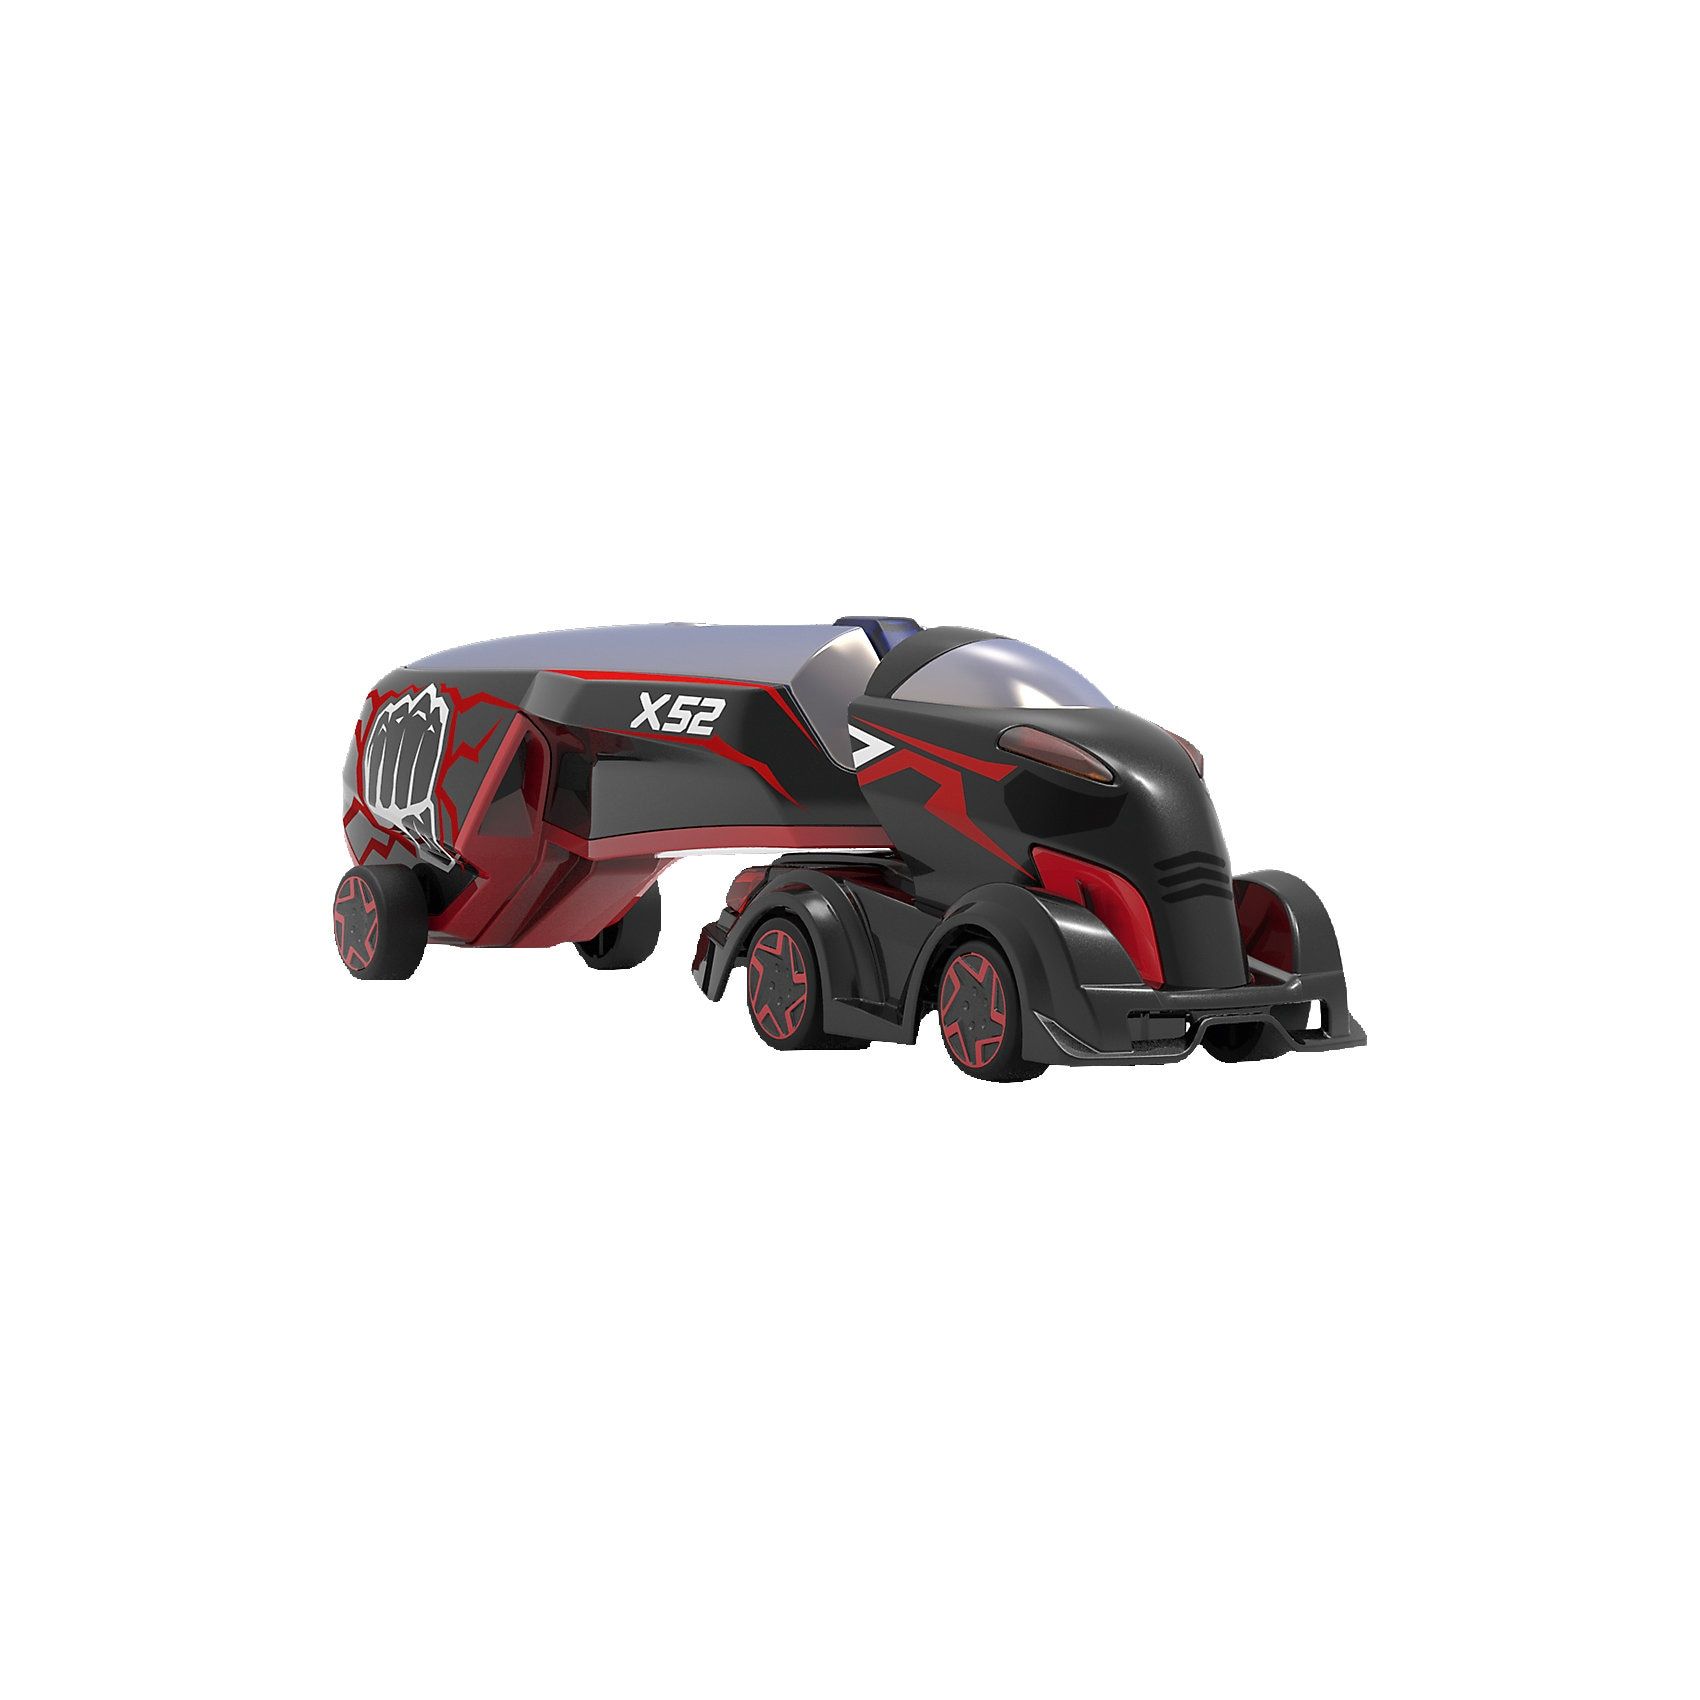 Anki Overdrive Supertruck X-52